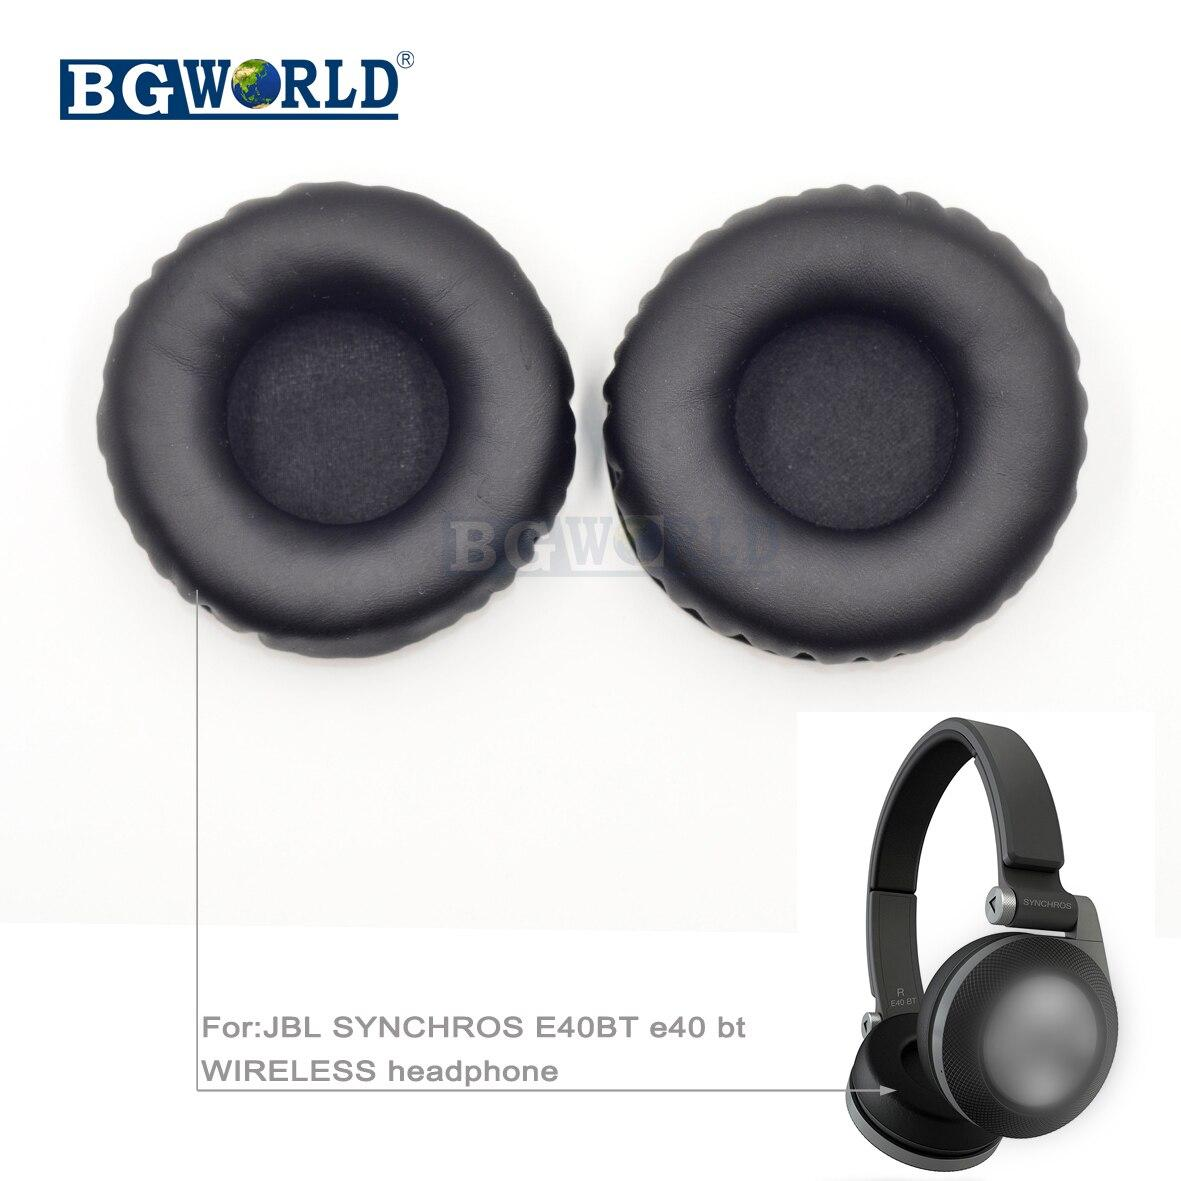 26dd4a00805 JBL SYNCHROS E40BT e40 bt WIRELESS HEAdSET. You will receive: 1 pair of ear  pads